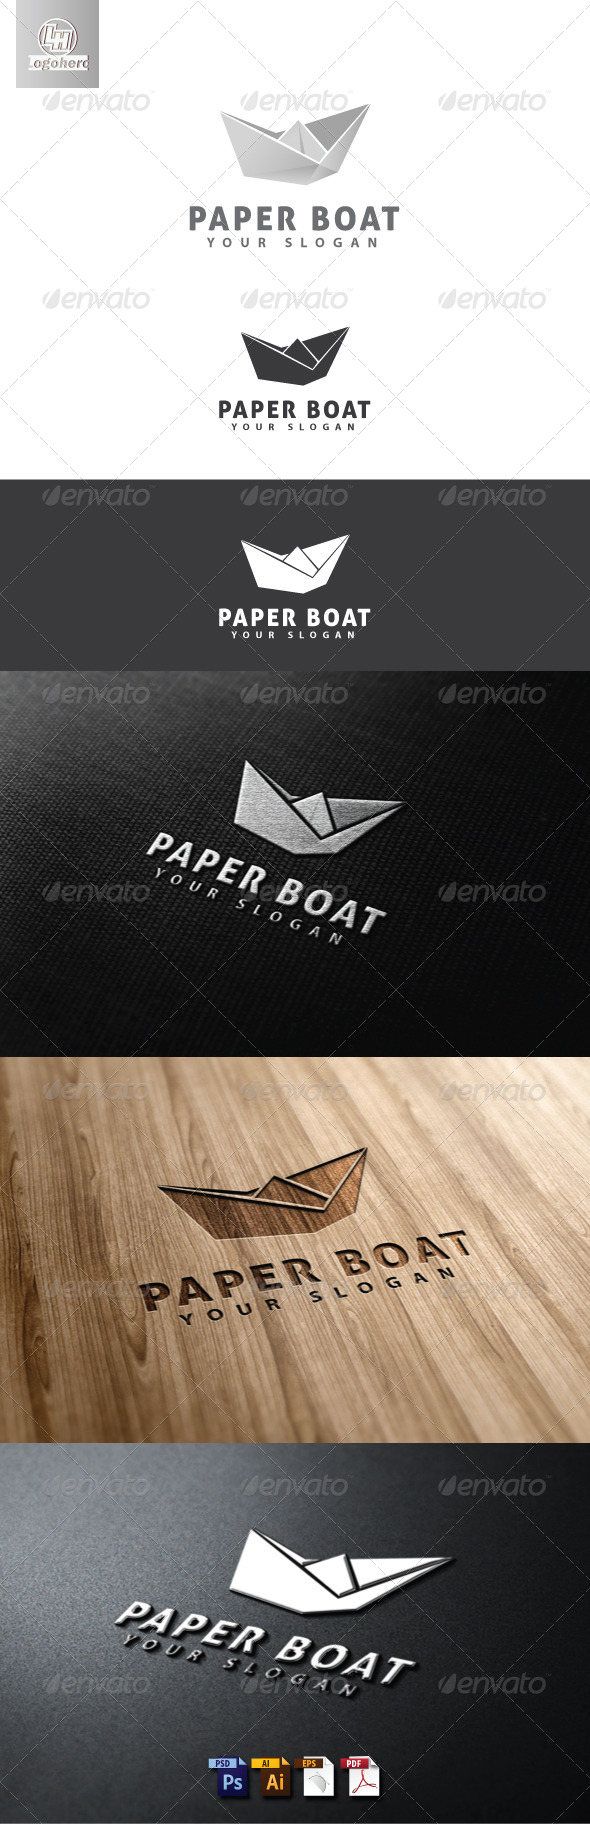 Paper Boat Logo Template - Objects Logo Templates